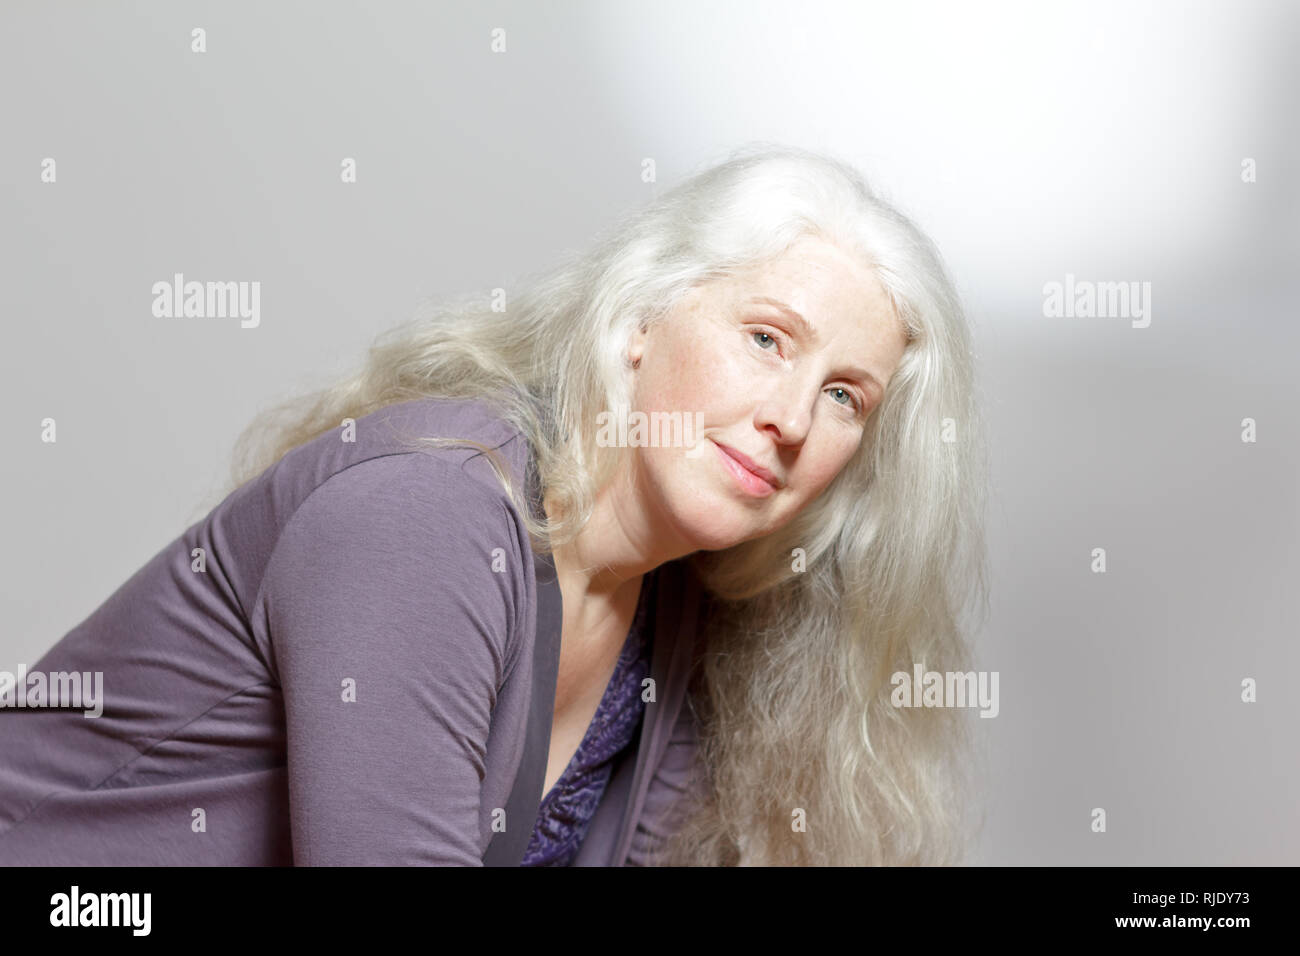 Headshot of an attractive mature woman with beautiful long gray hair in front of white background, copy space. Stock Photo